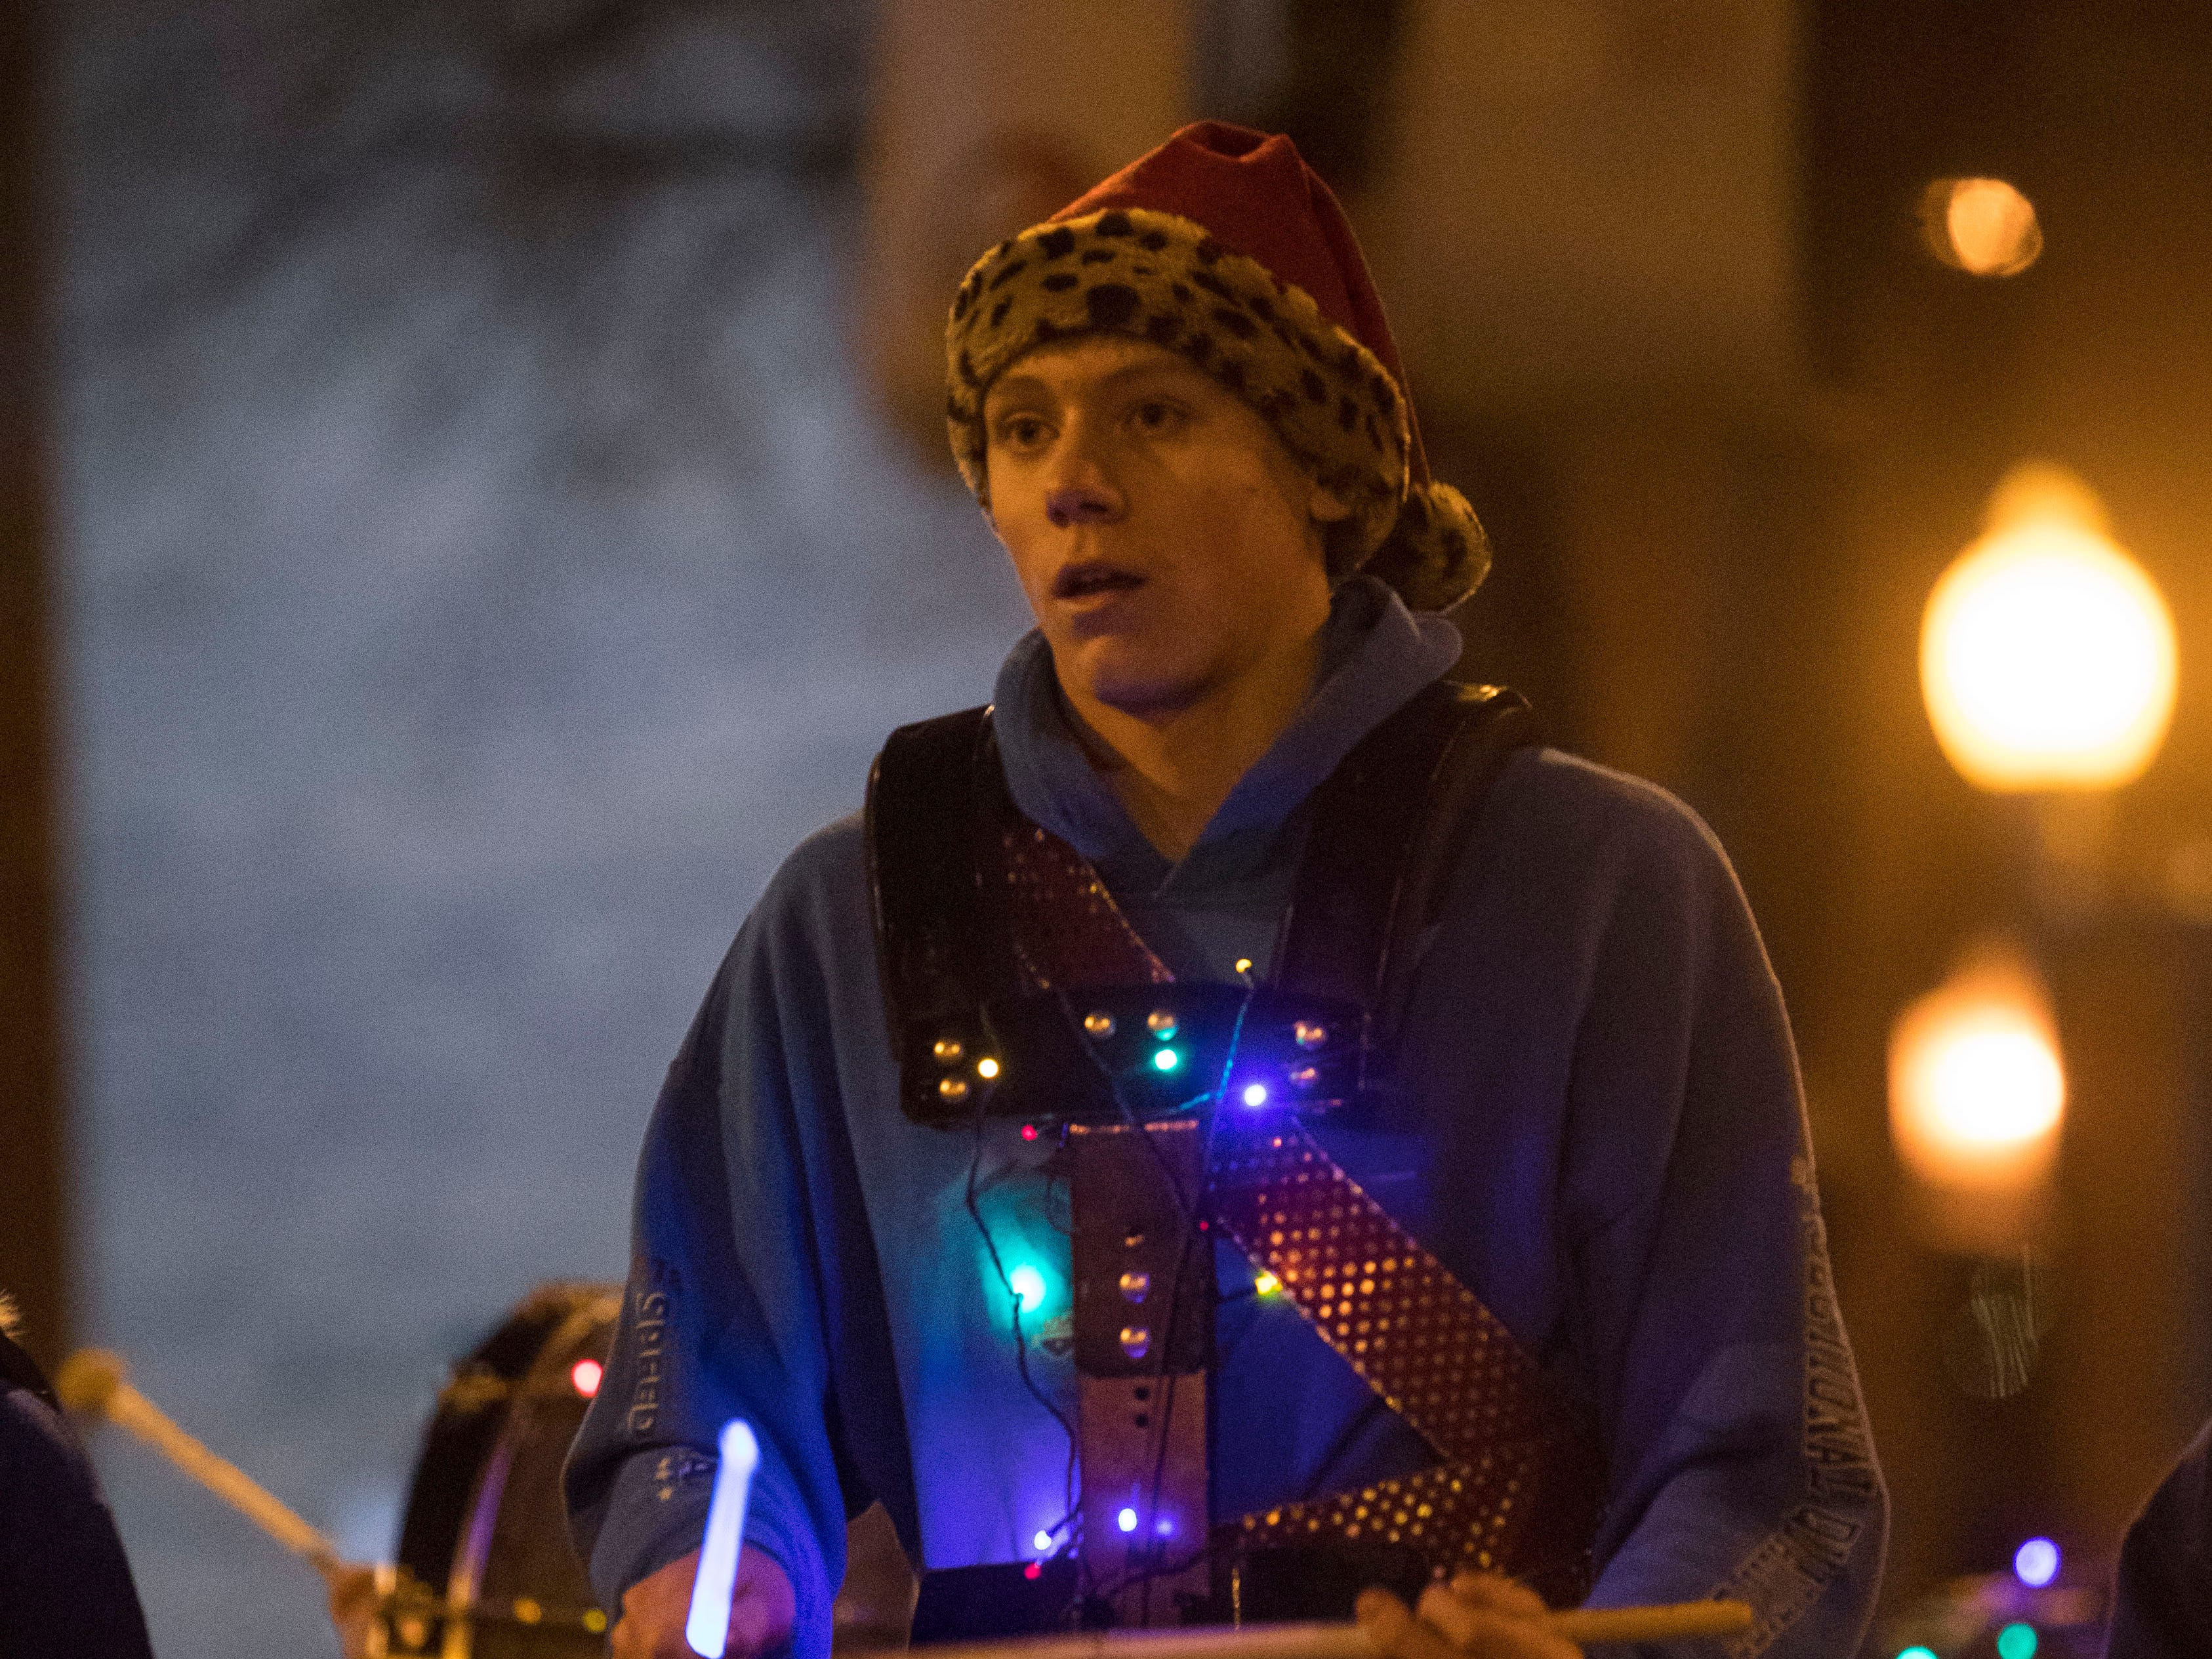 Band member participates in the annual Parade of Lights in downtown Sioux Falls, S.D., Friday, Nov. 23, 2018.